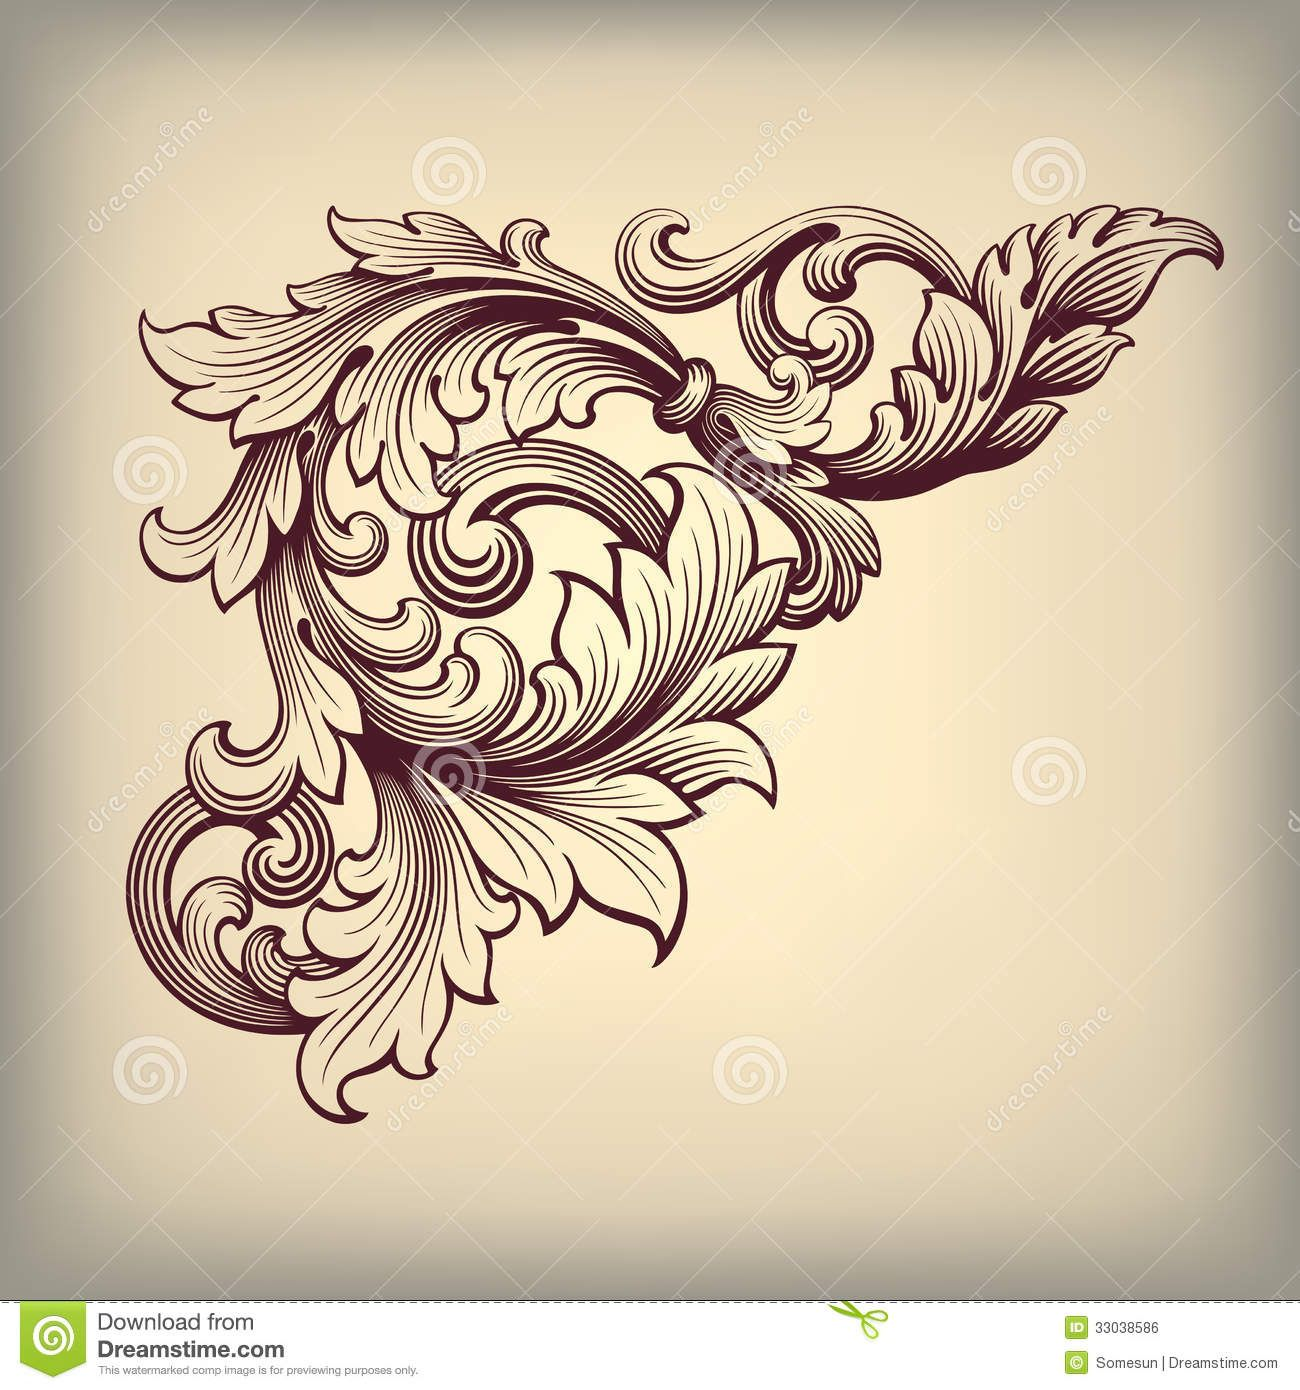 Meuble Baroque Design Baroque Design Vector Vintage Baroque Scroll Design